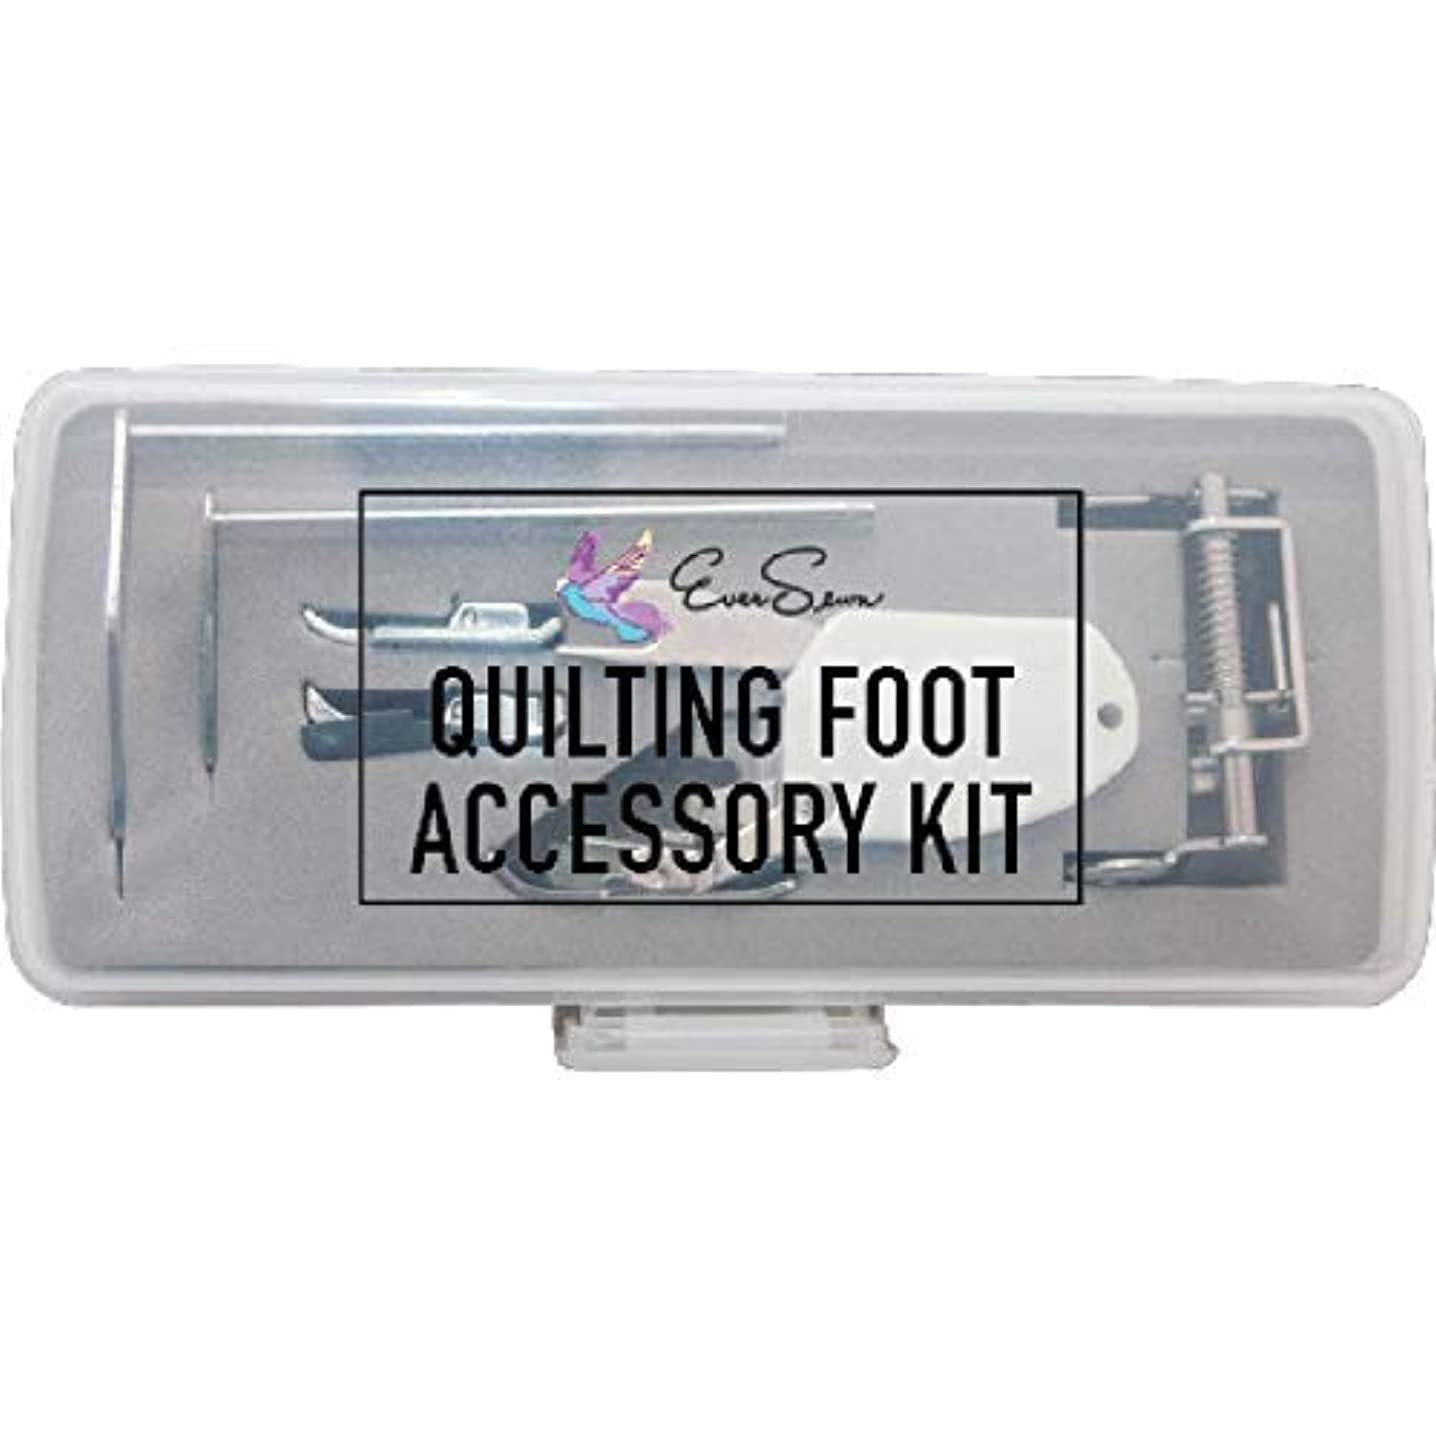 Ever Sewn Eversewn 6-pc Accessory Quilting Foot Kit Low Shank